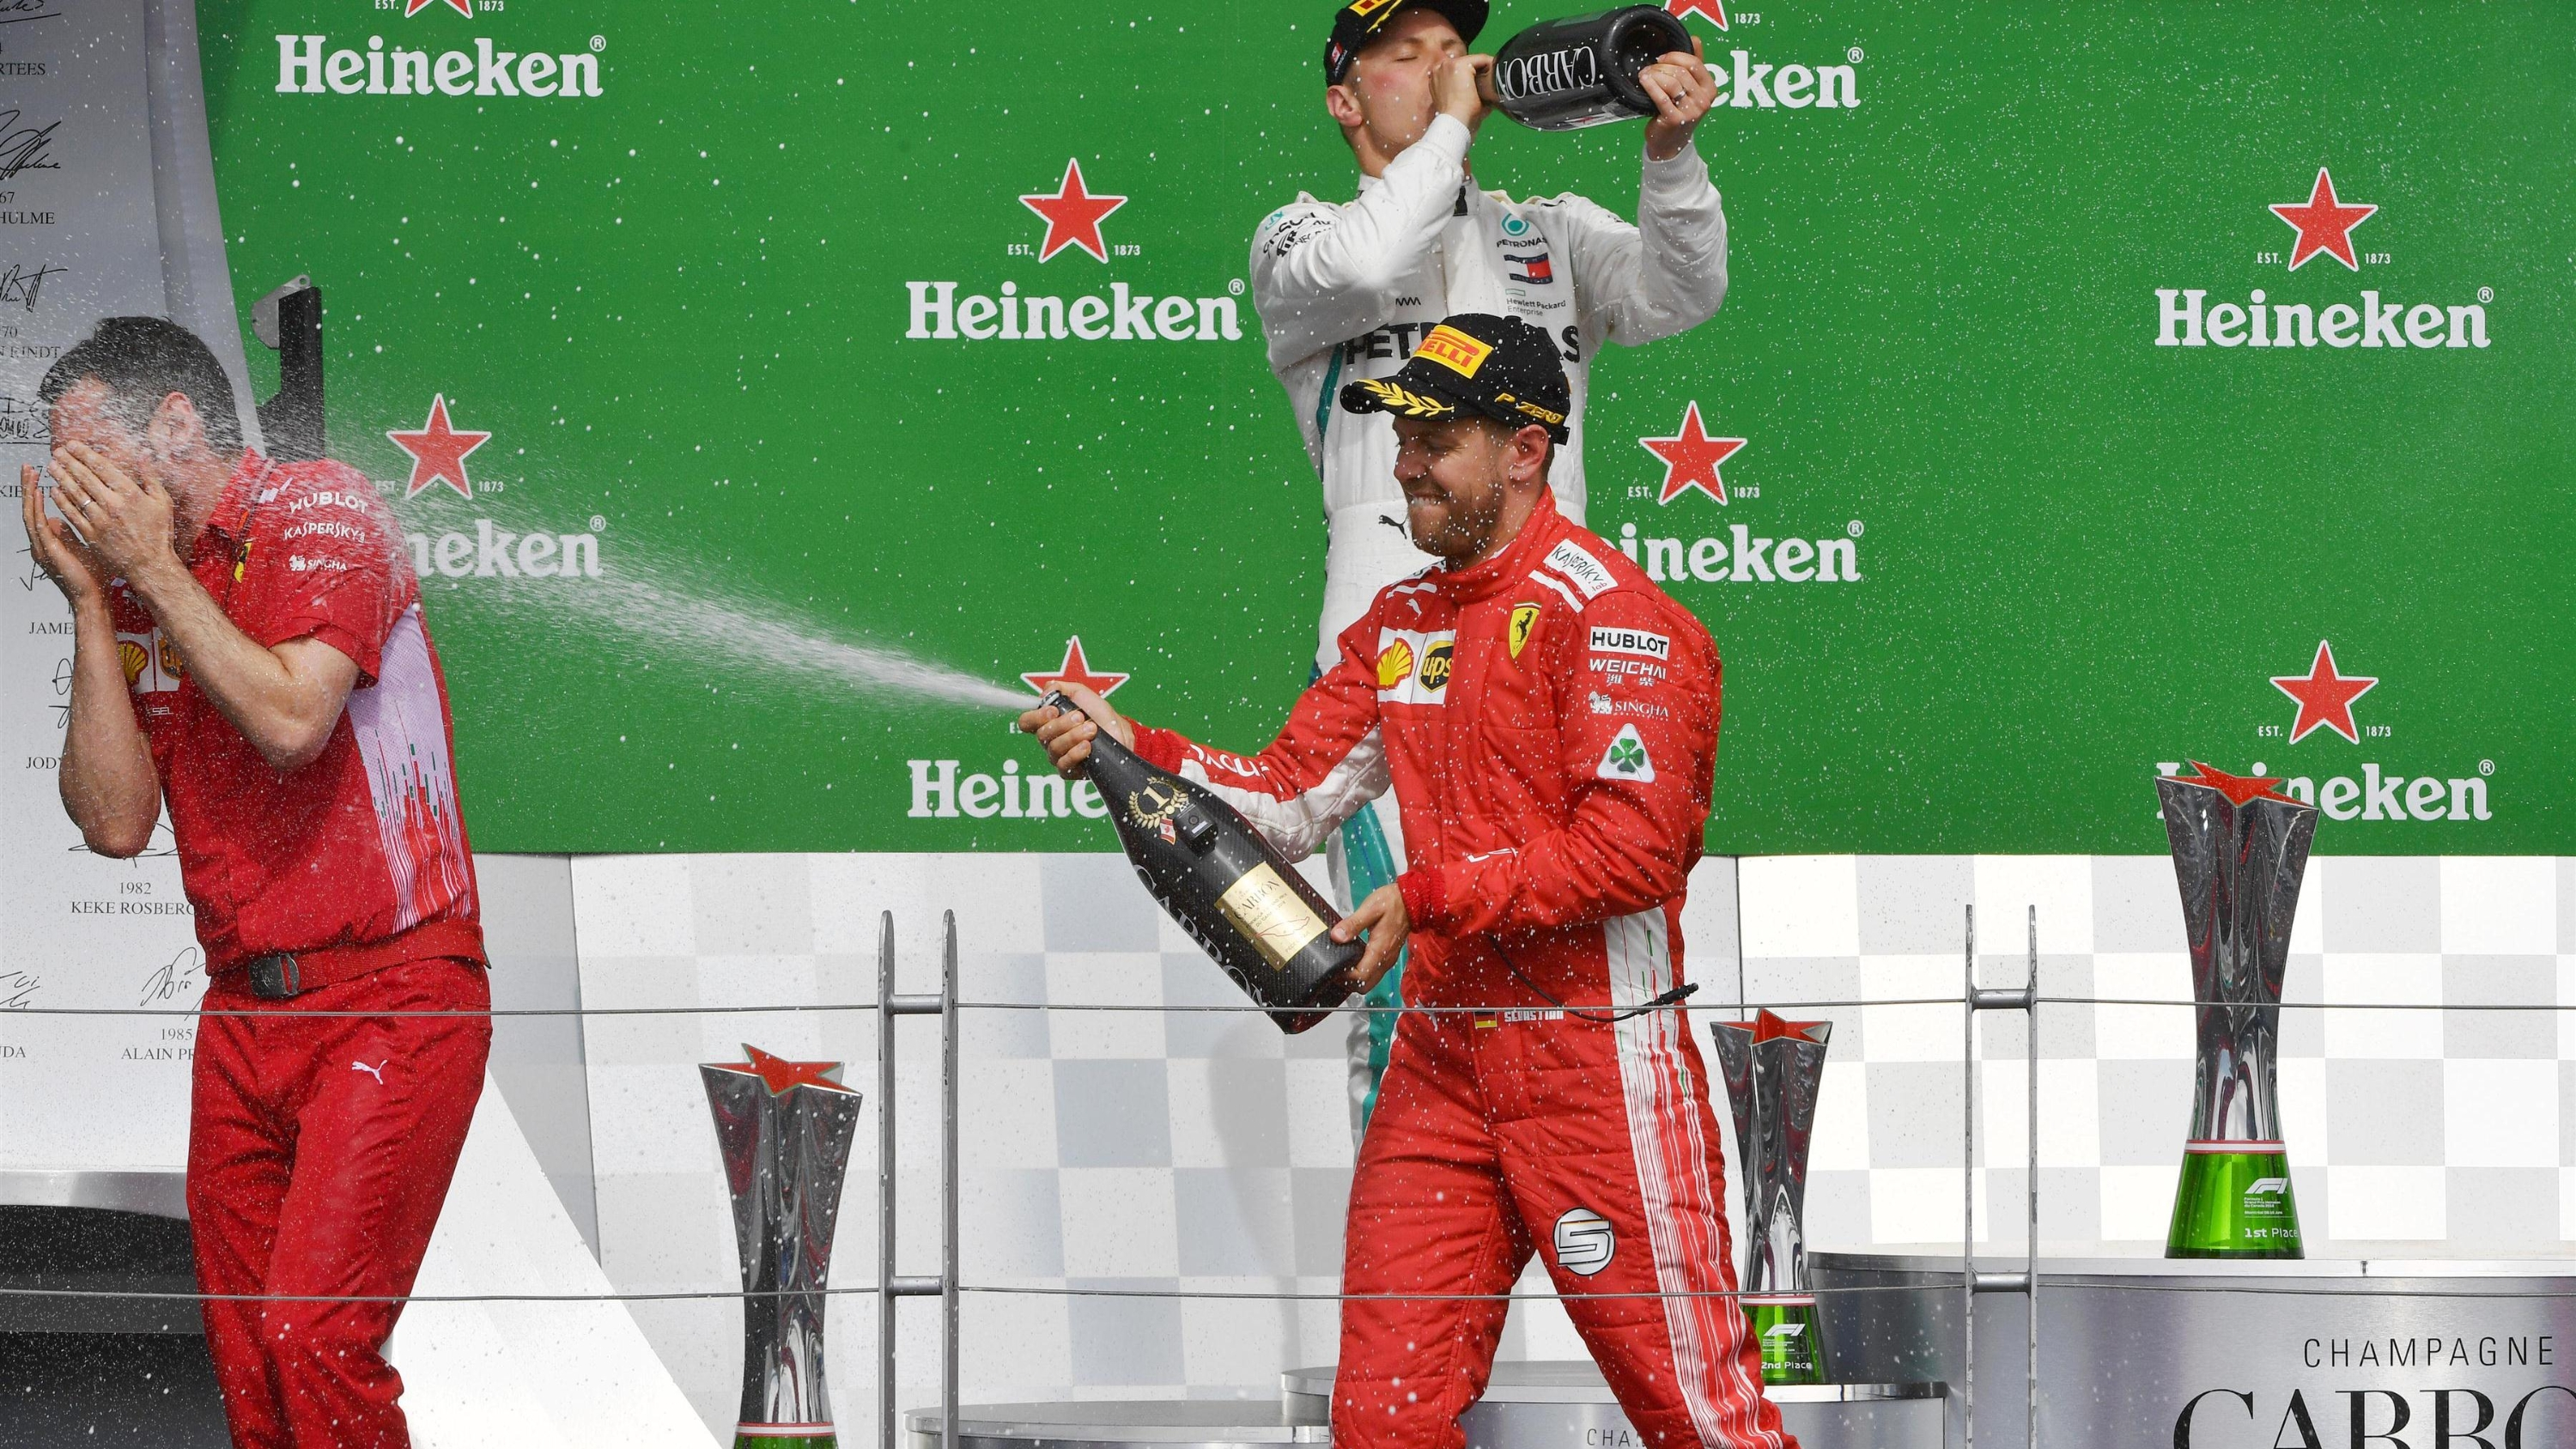 Hamilton wins French Grand Prix, takes championship lead